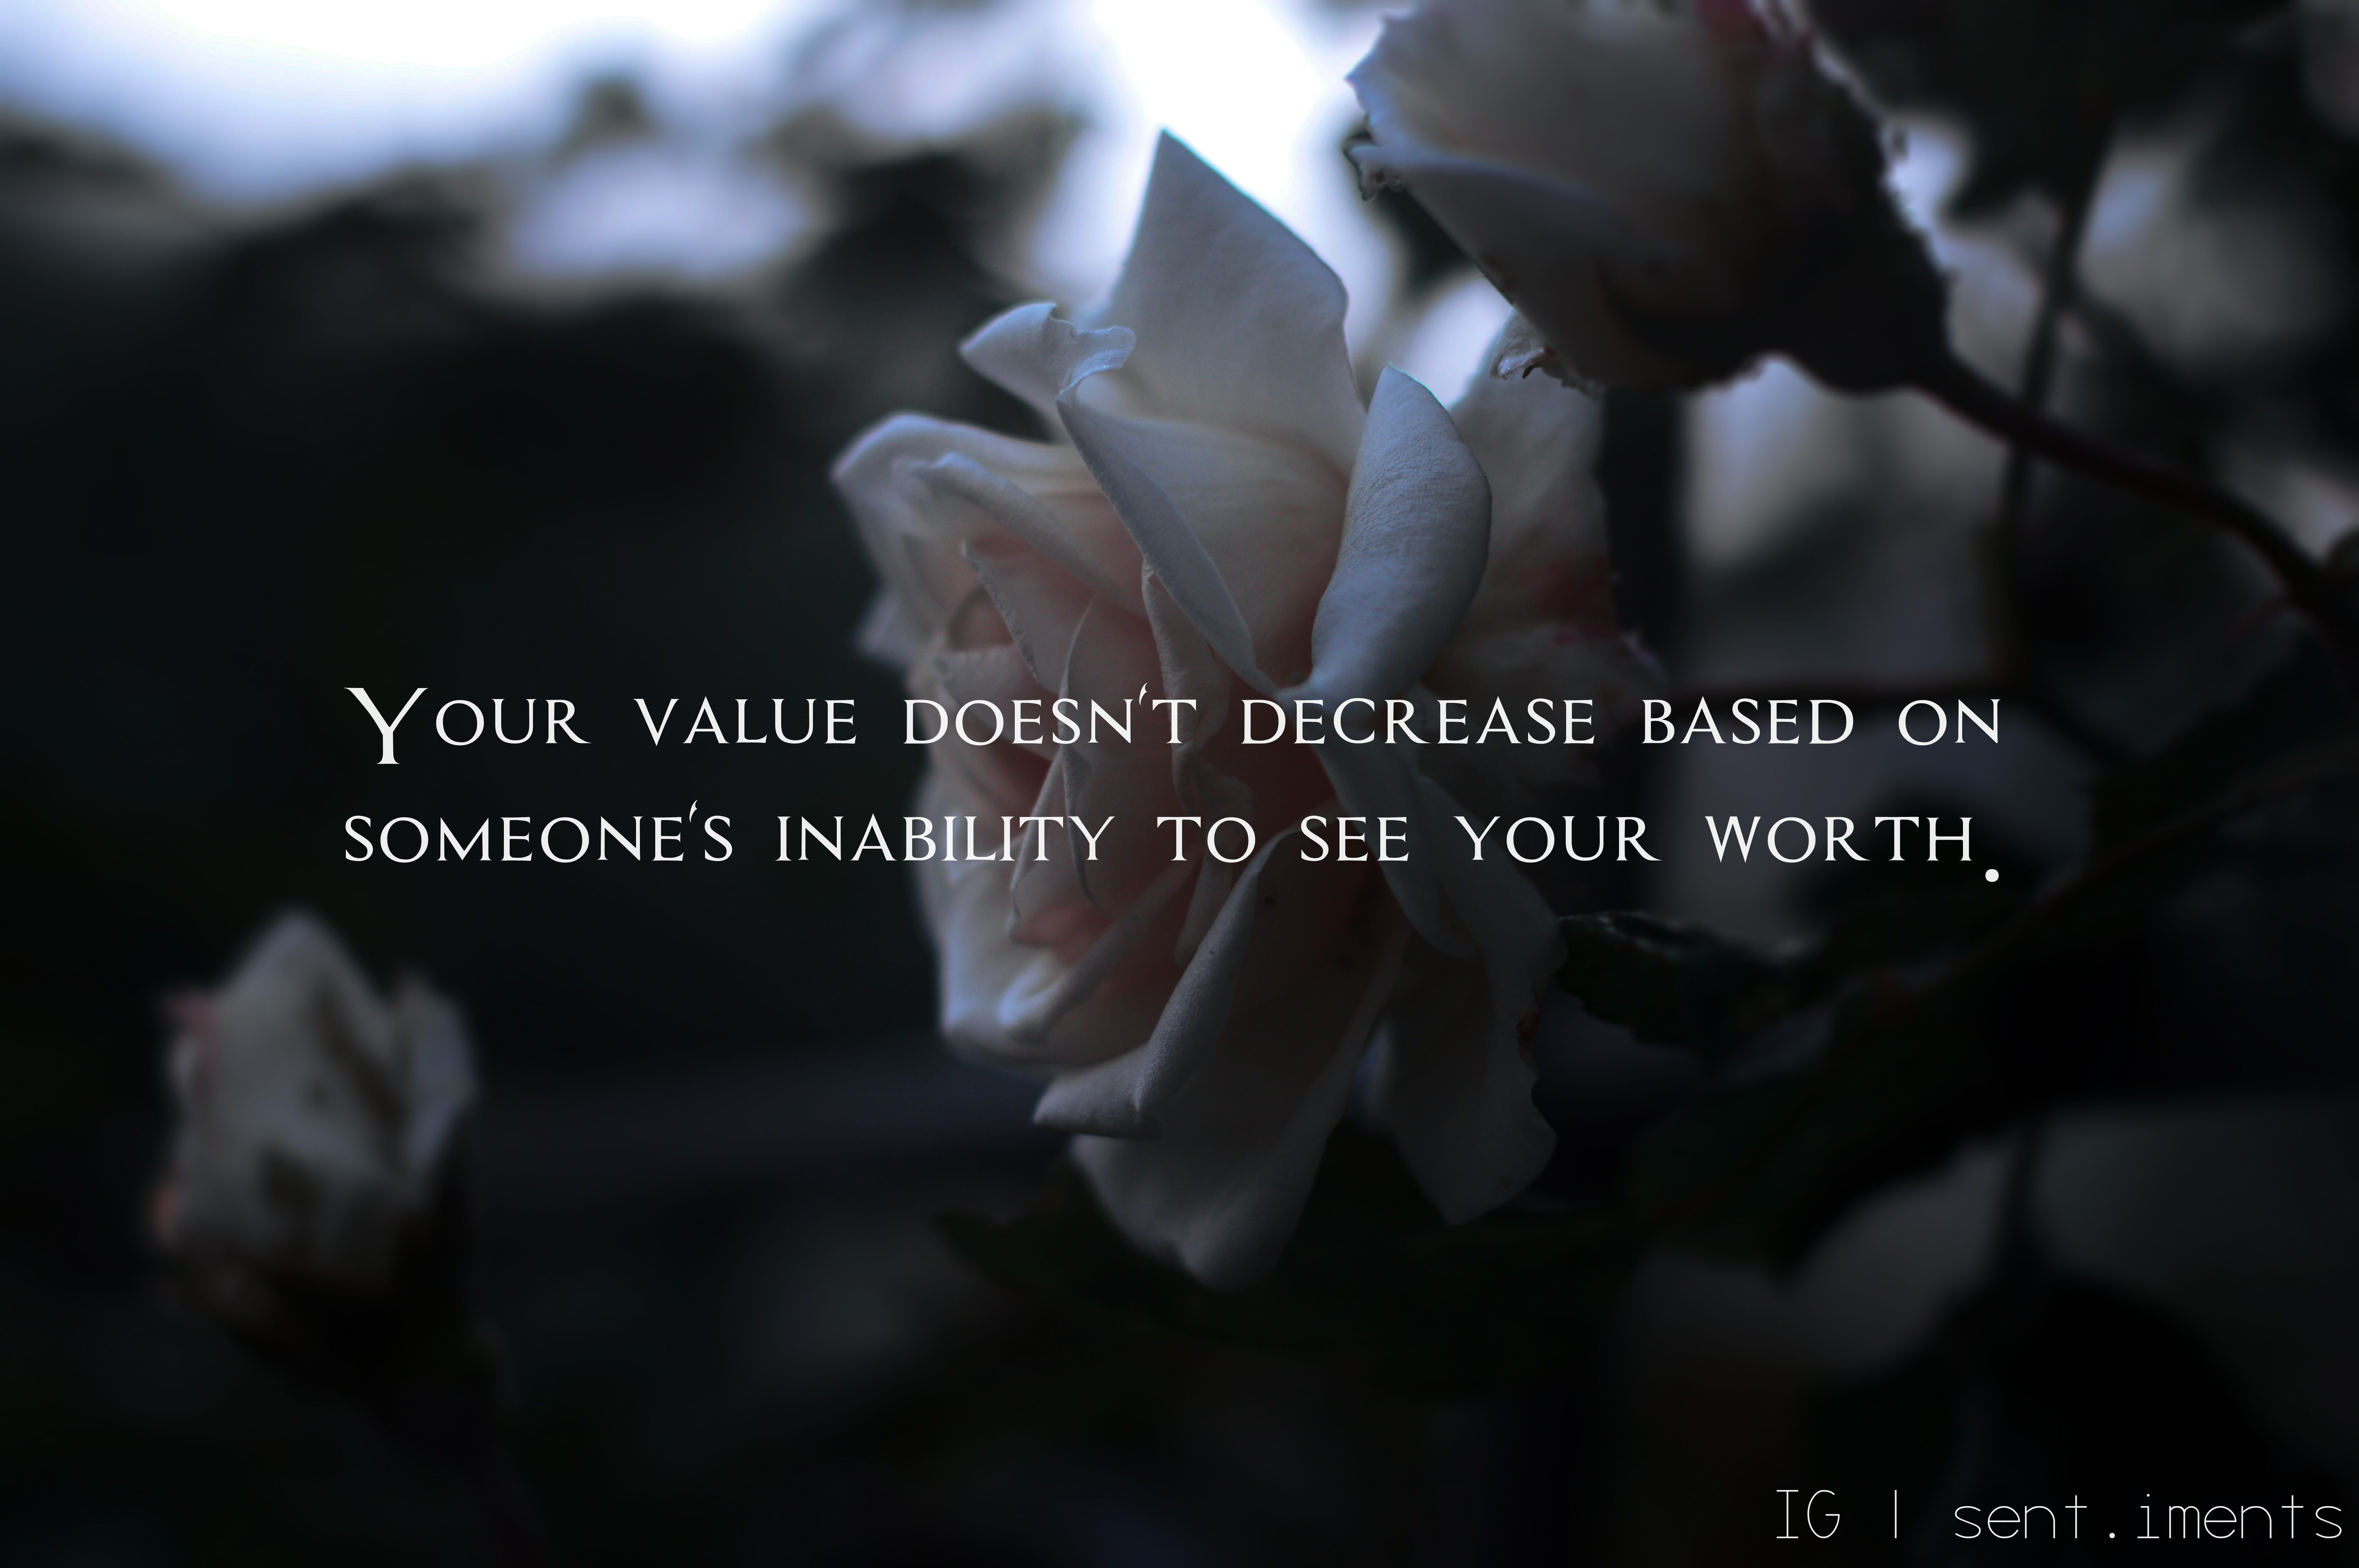 """Your value doesn't decrease based on someone's inability to see your worth"" by Unknown [ 6016 X 4000]"